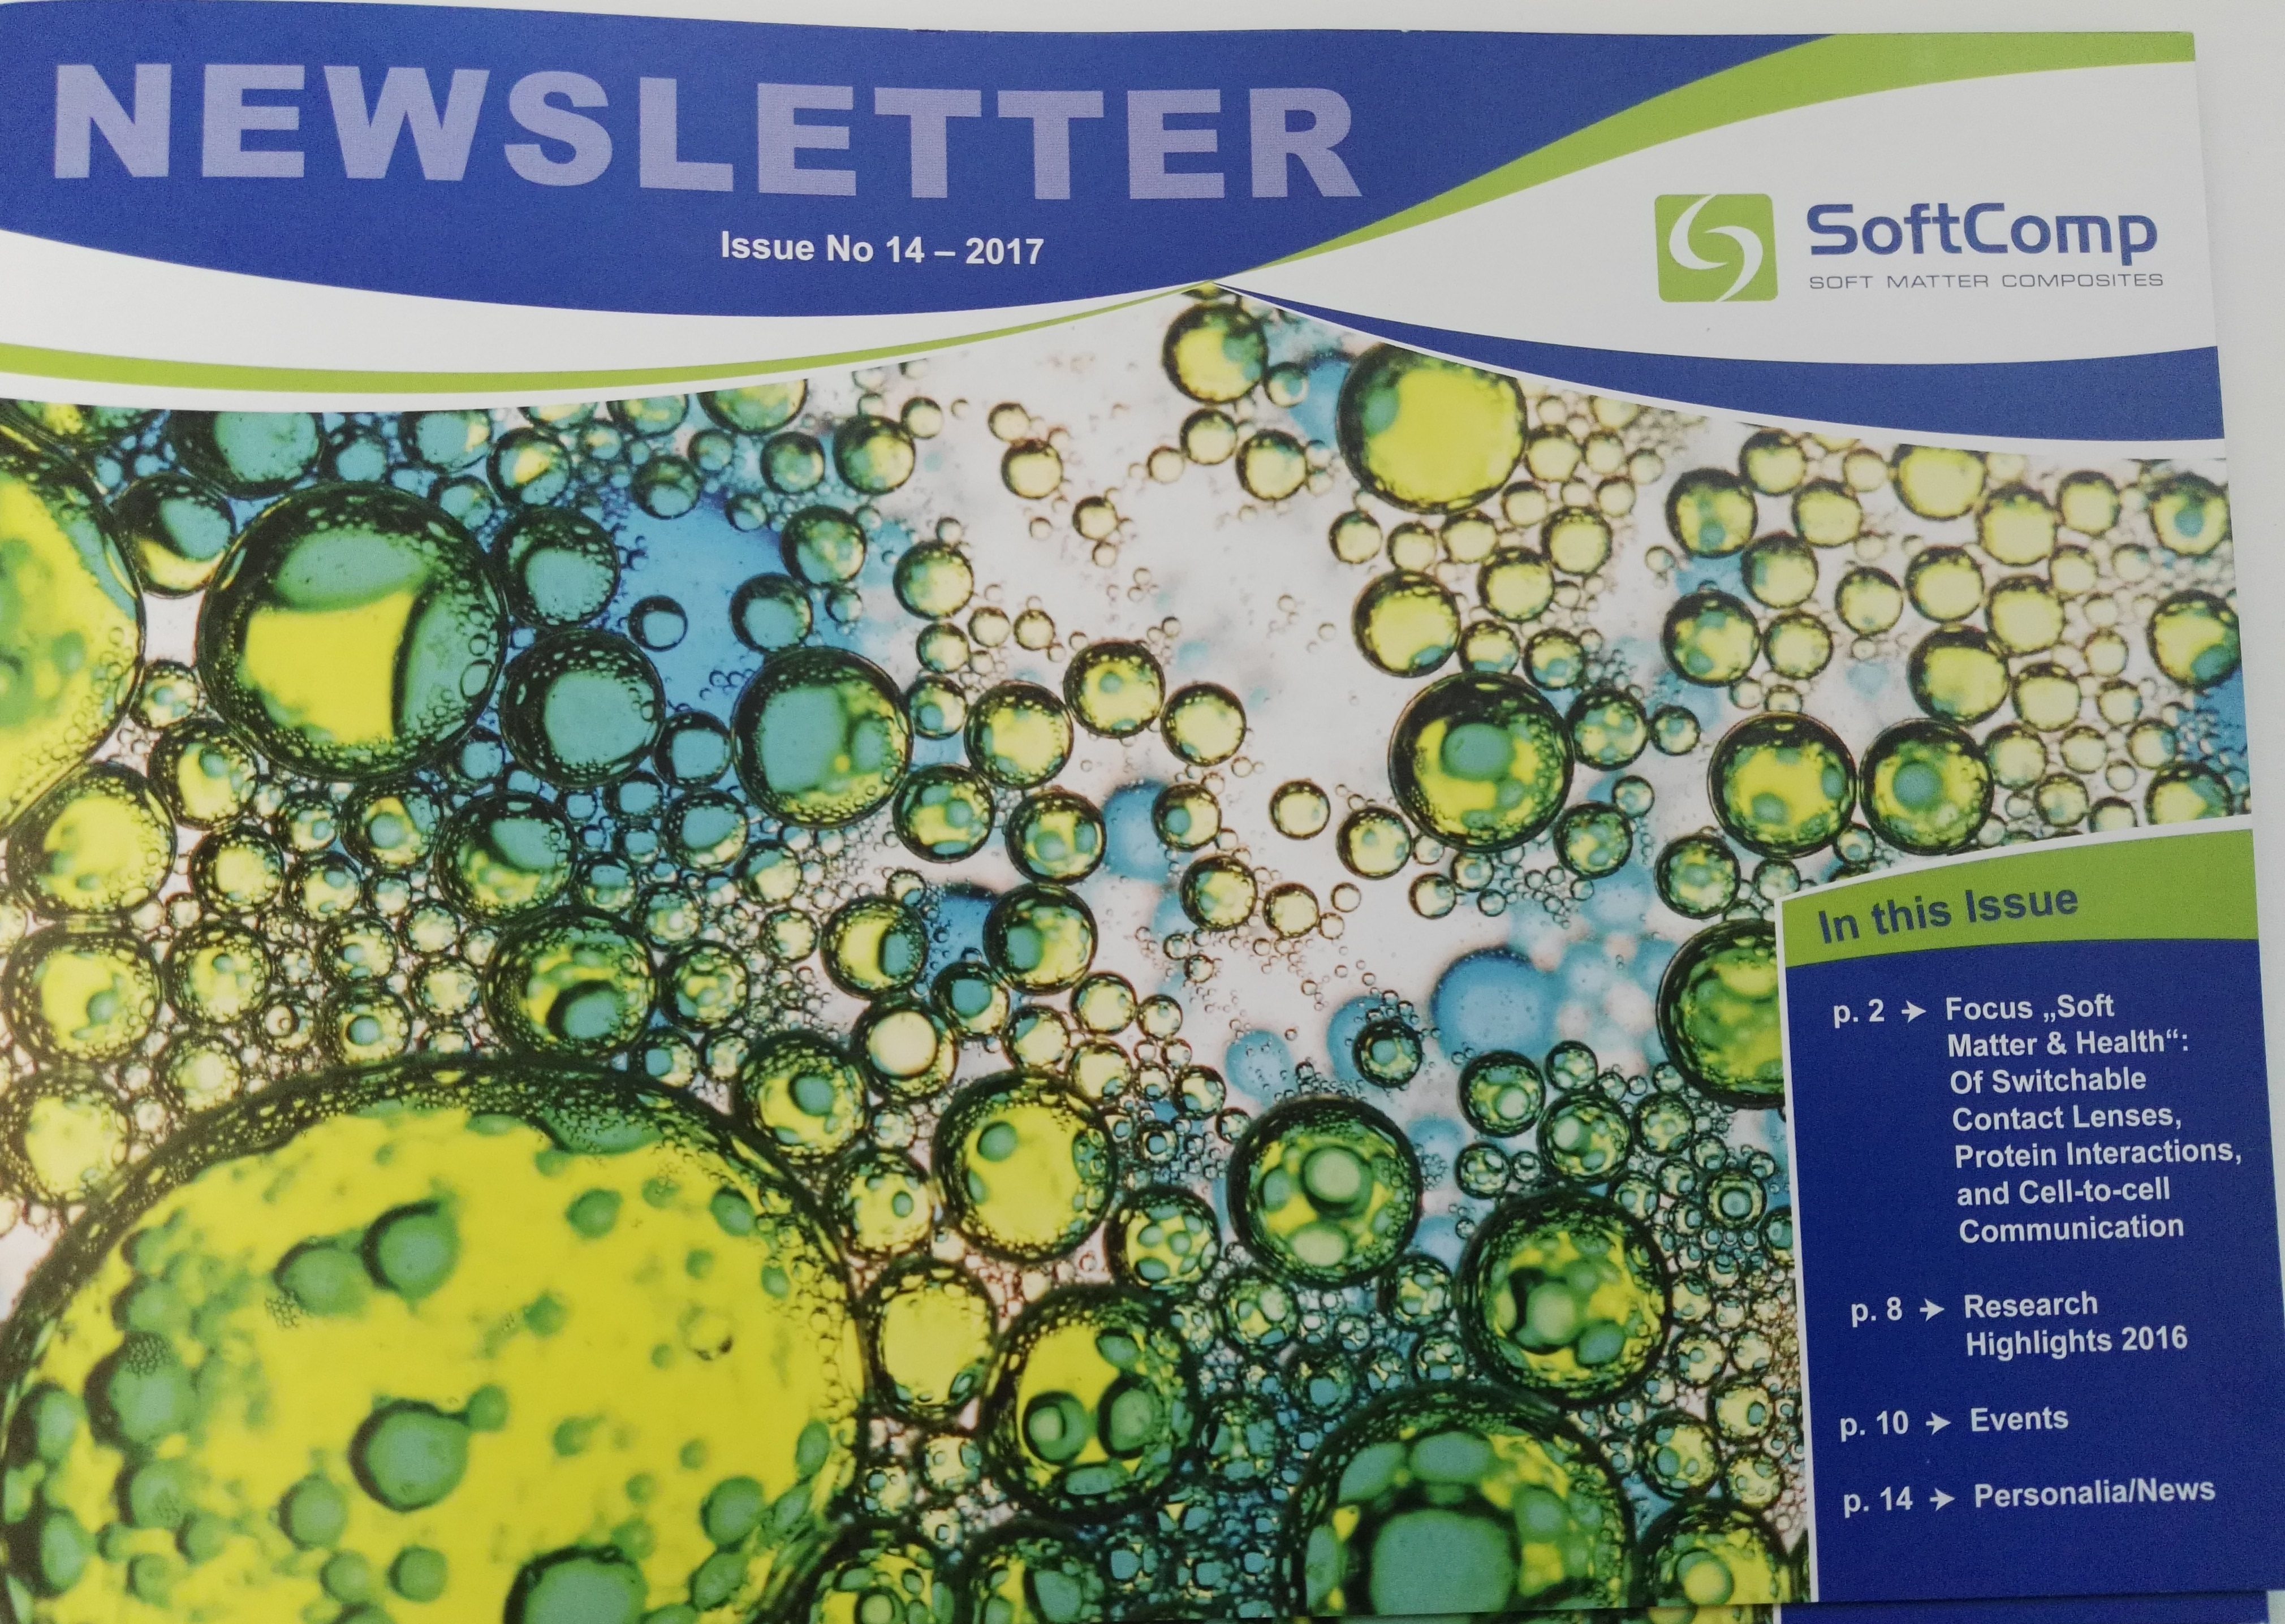 SoftComp Newsletter July 2017